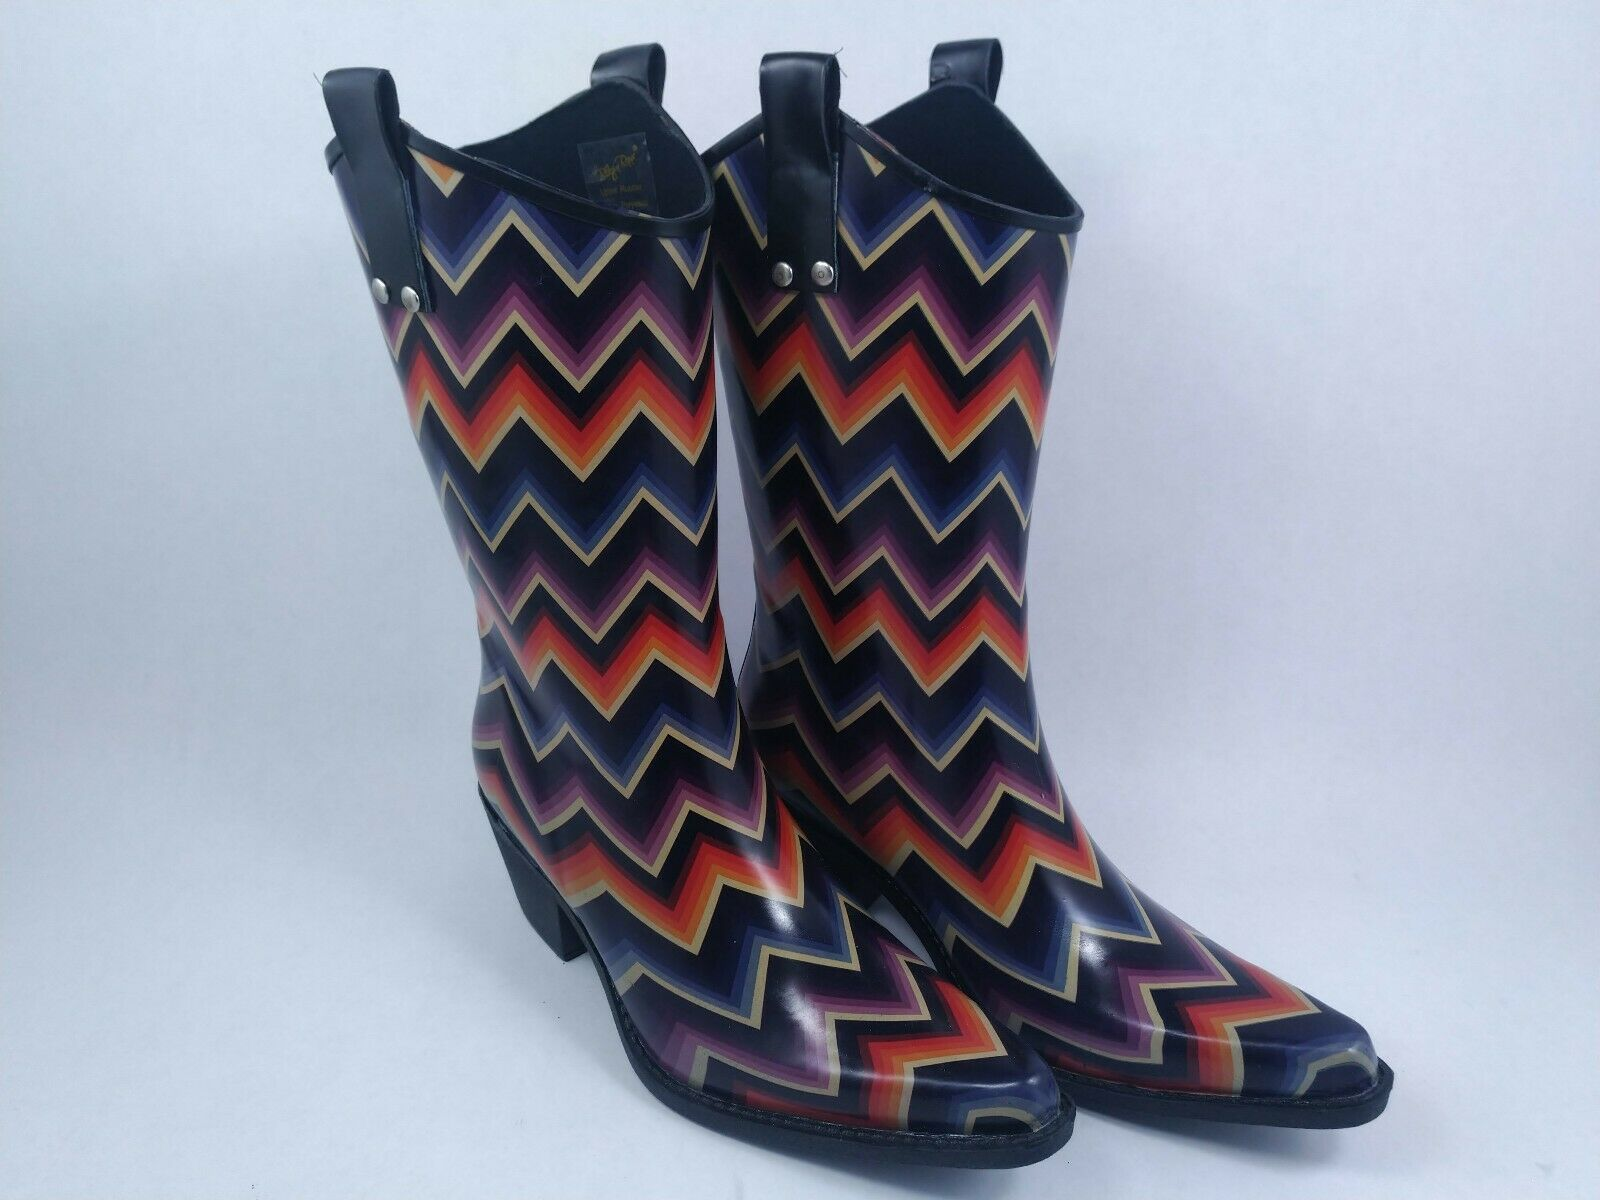 BLAZIN ROXX Womens Cowboy Rain Boots - Chevron Kale Multicolor Size 8m shoes